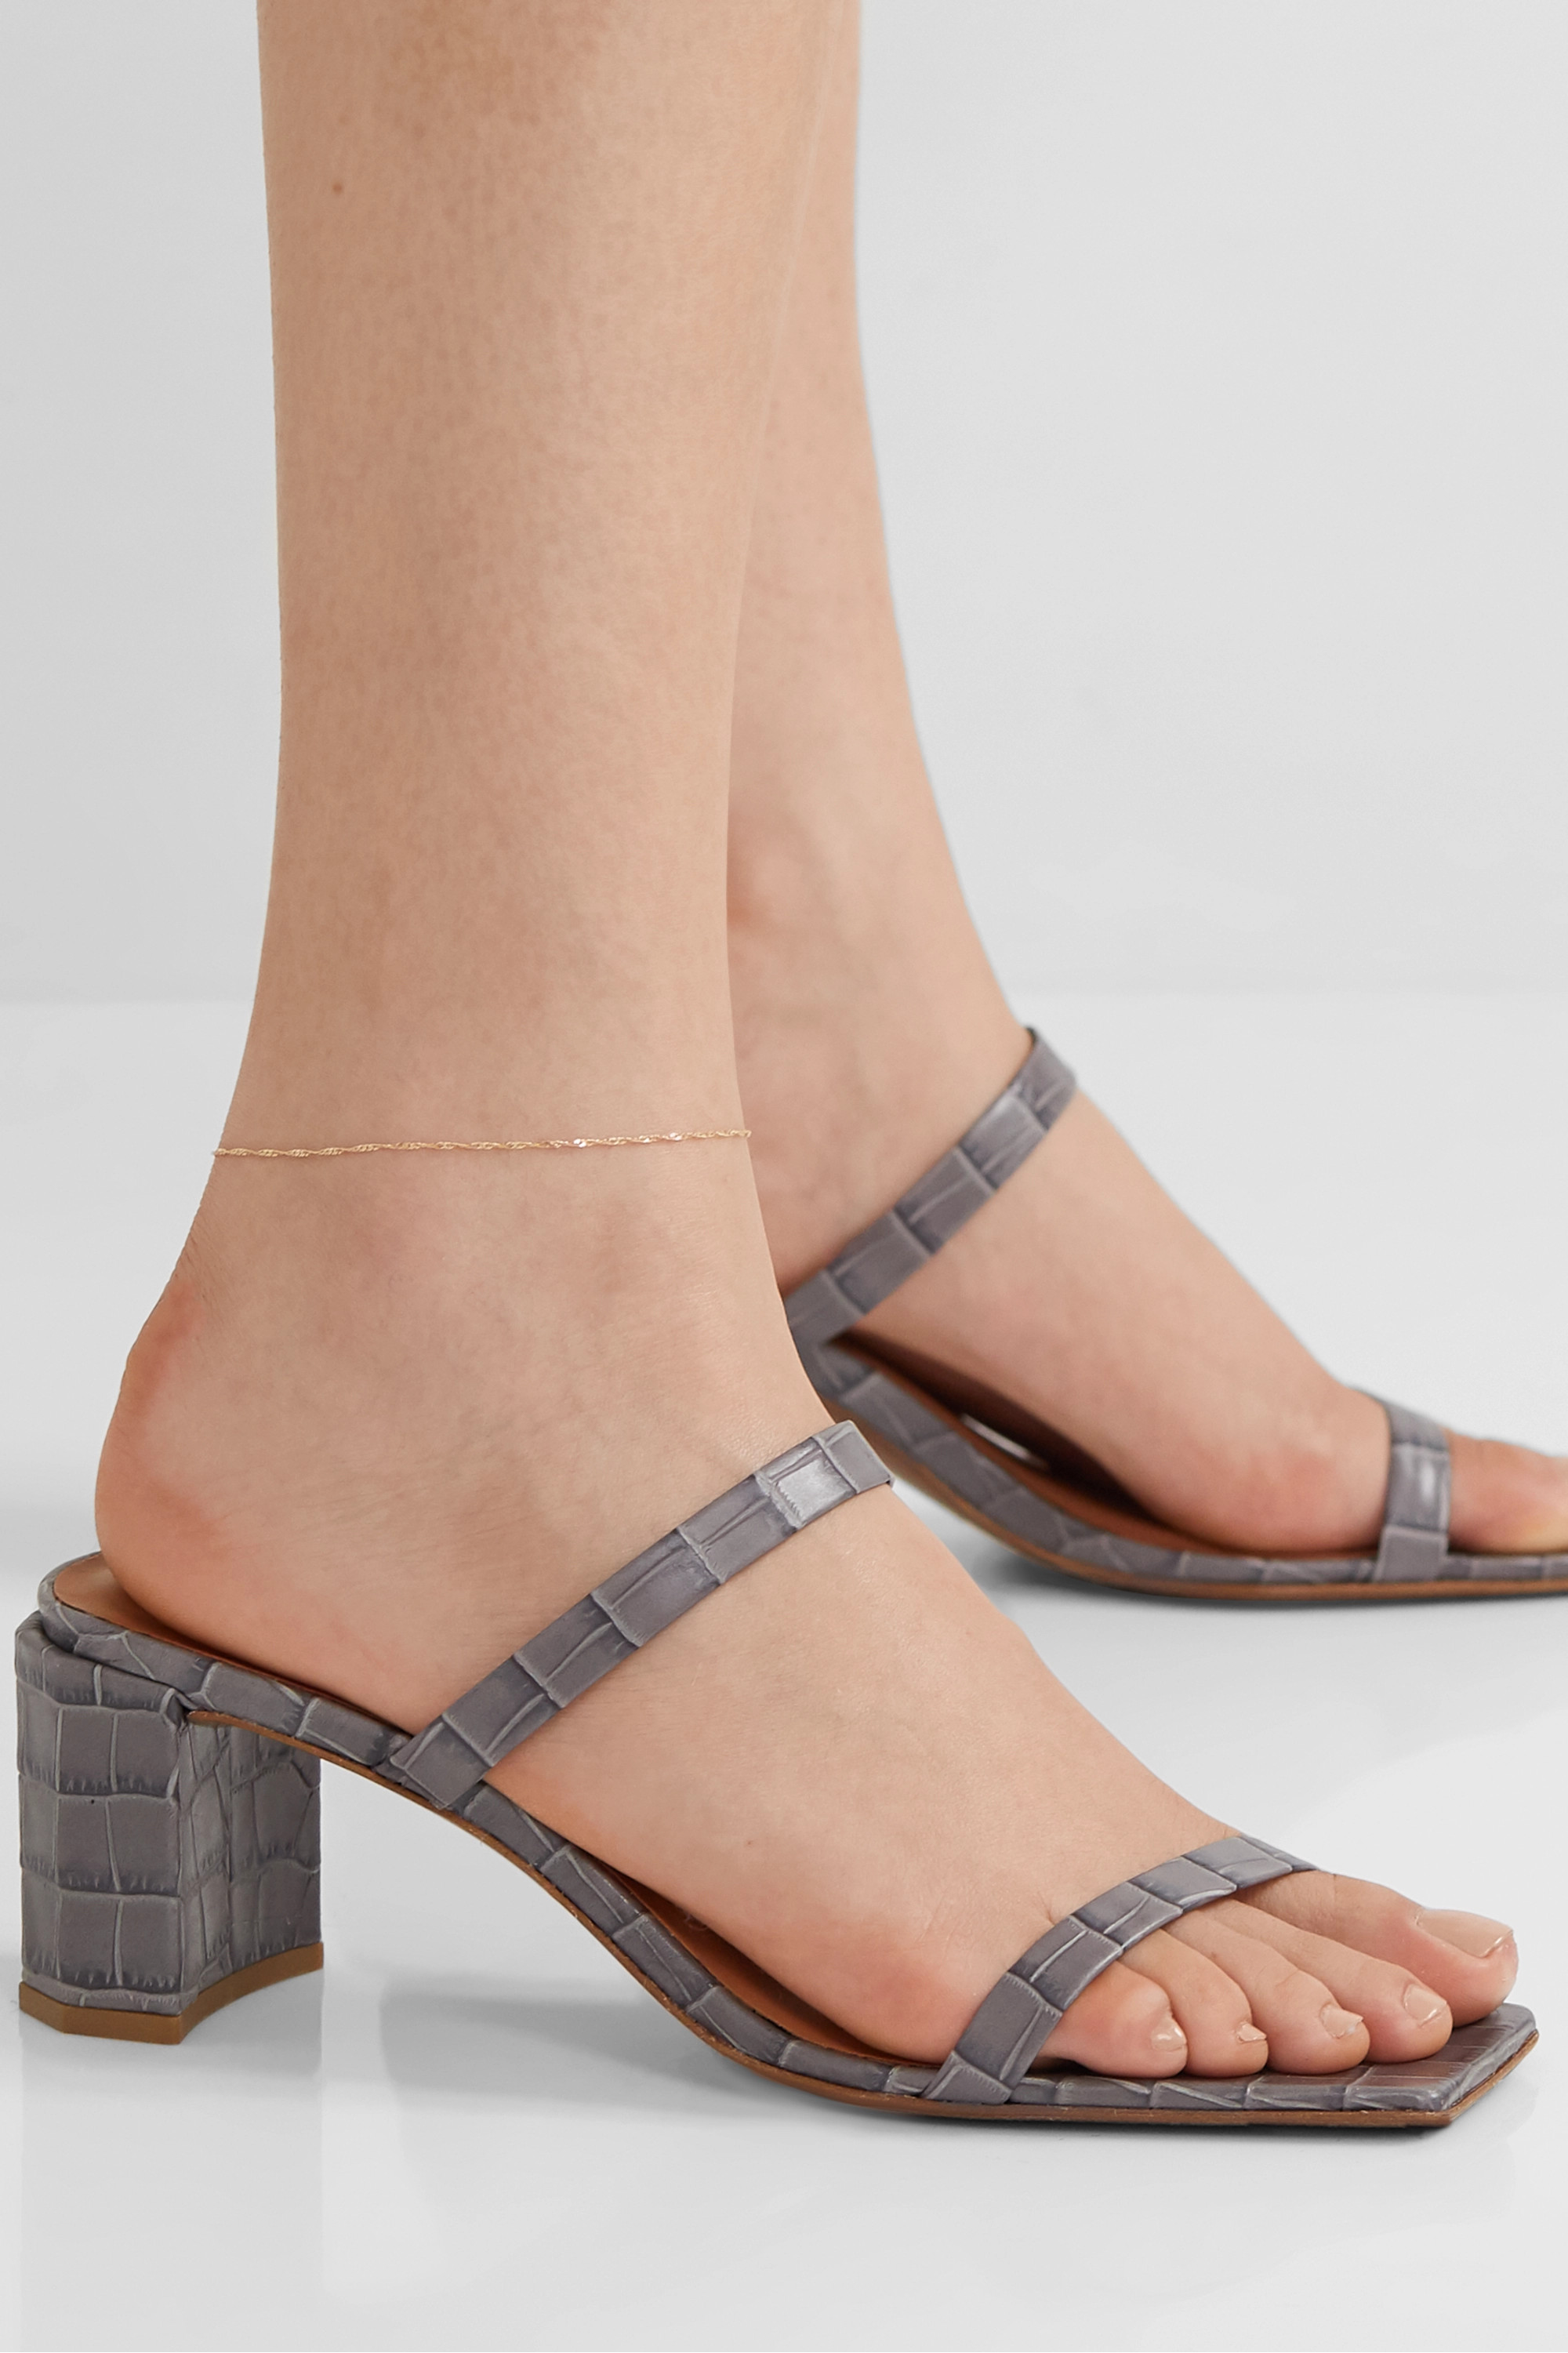 Catbird + NET SUSTAIN Sweet Nothing gold anklet